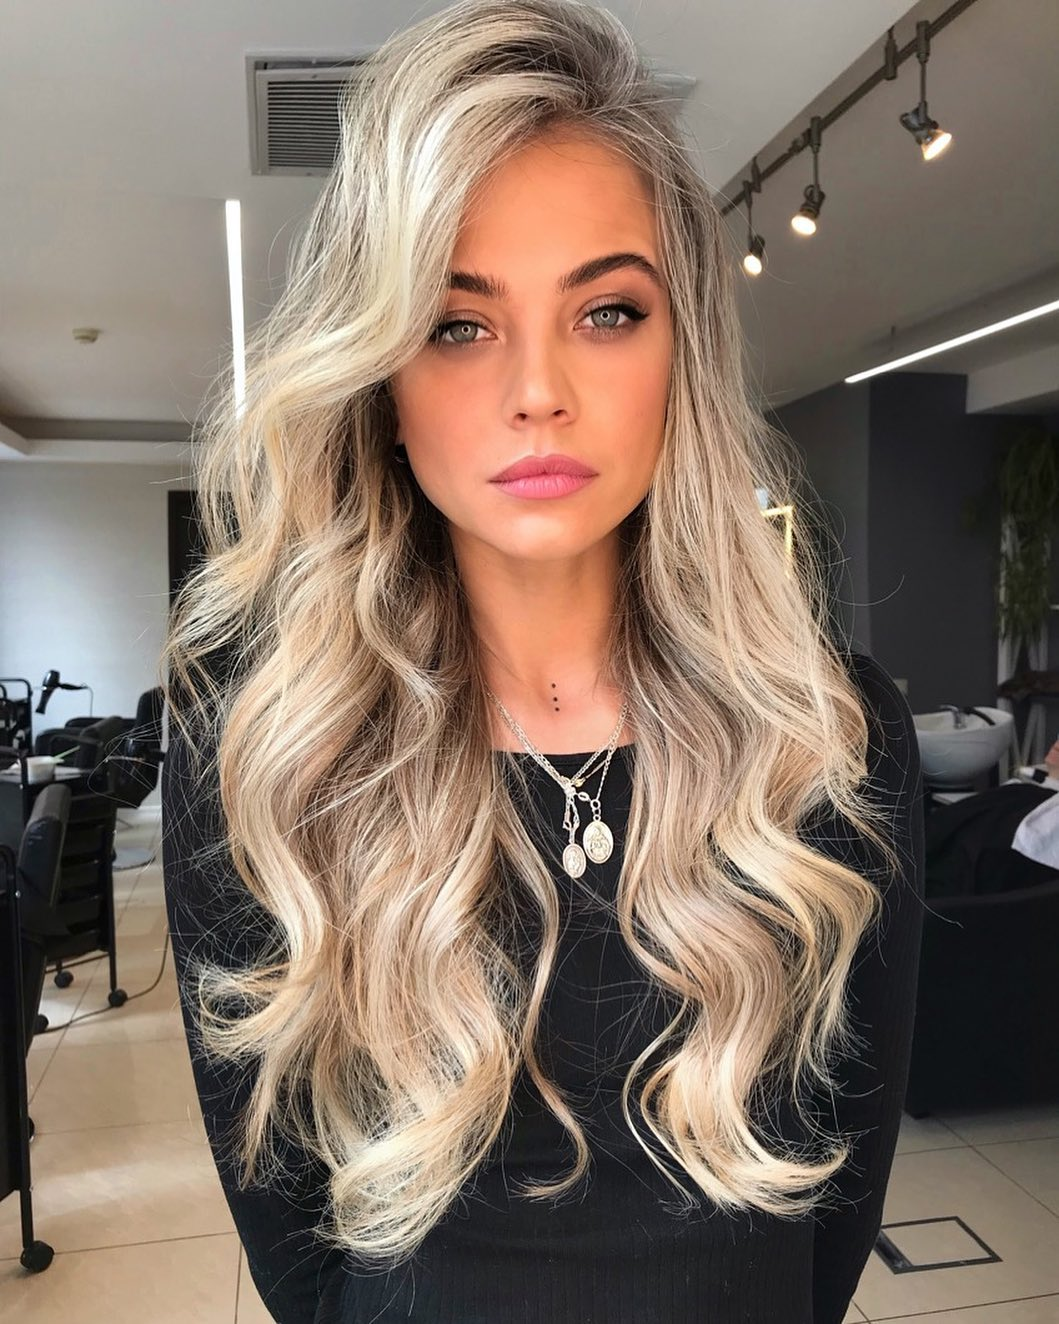 Hairstyles with long hair on square faces